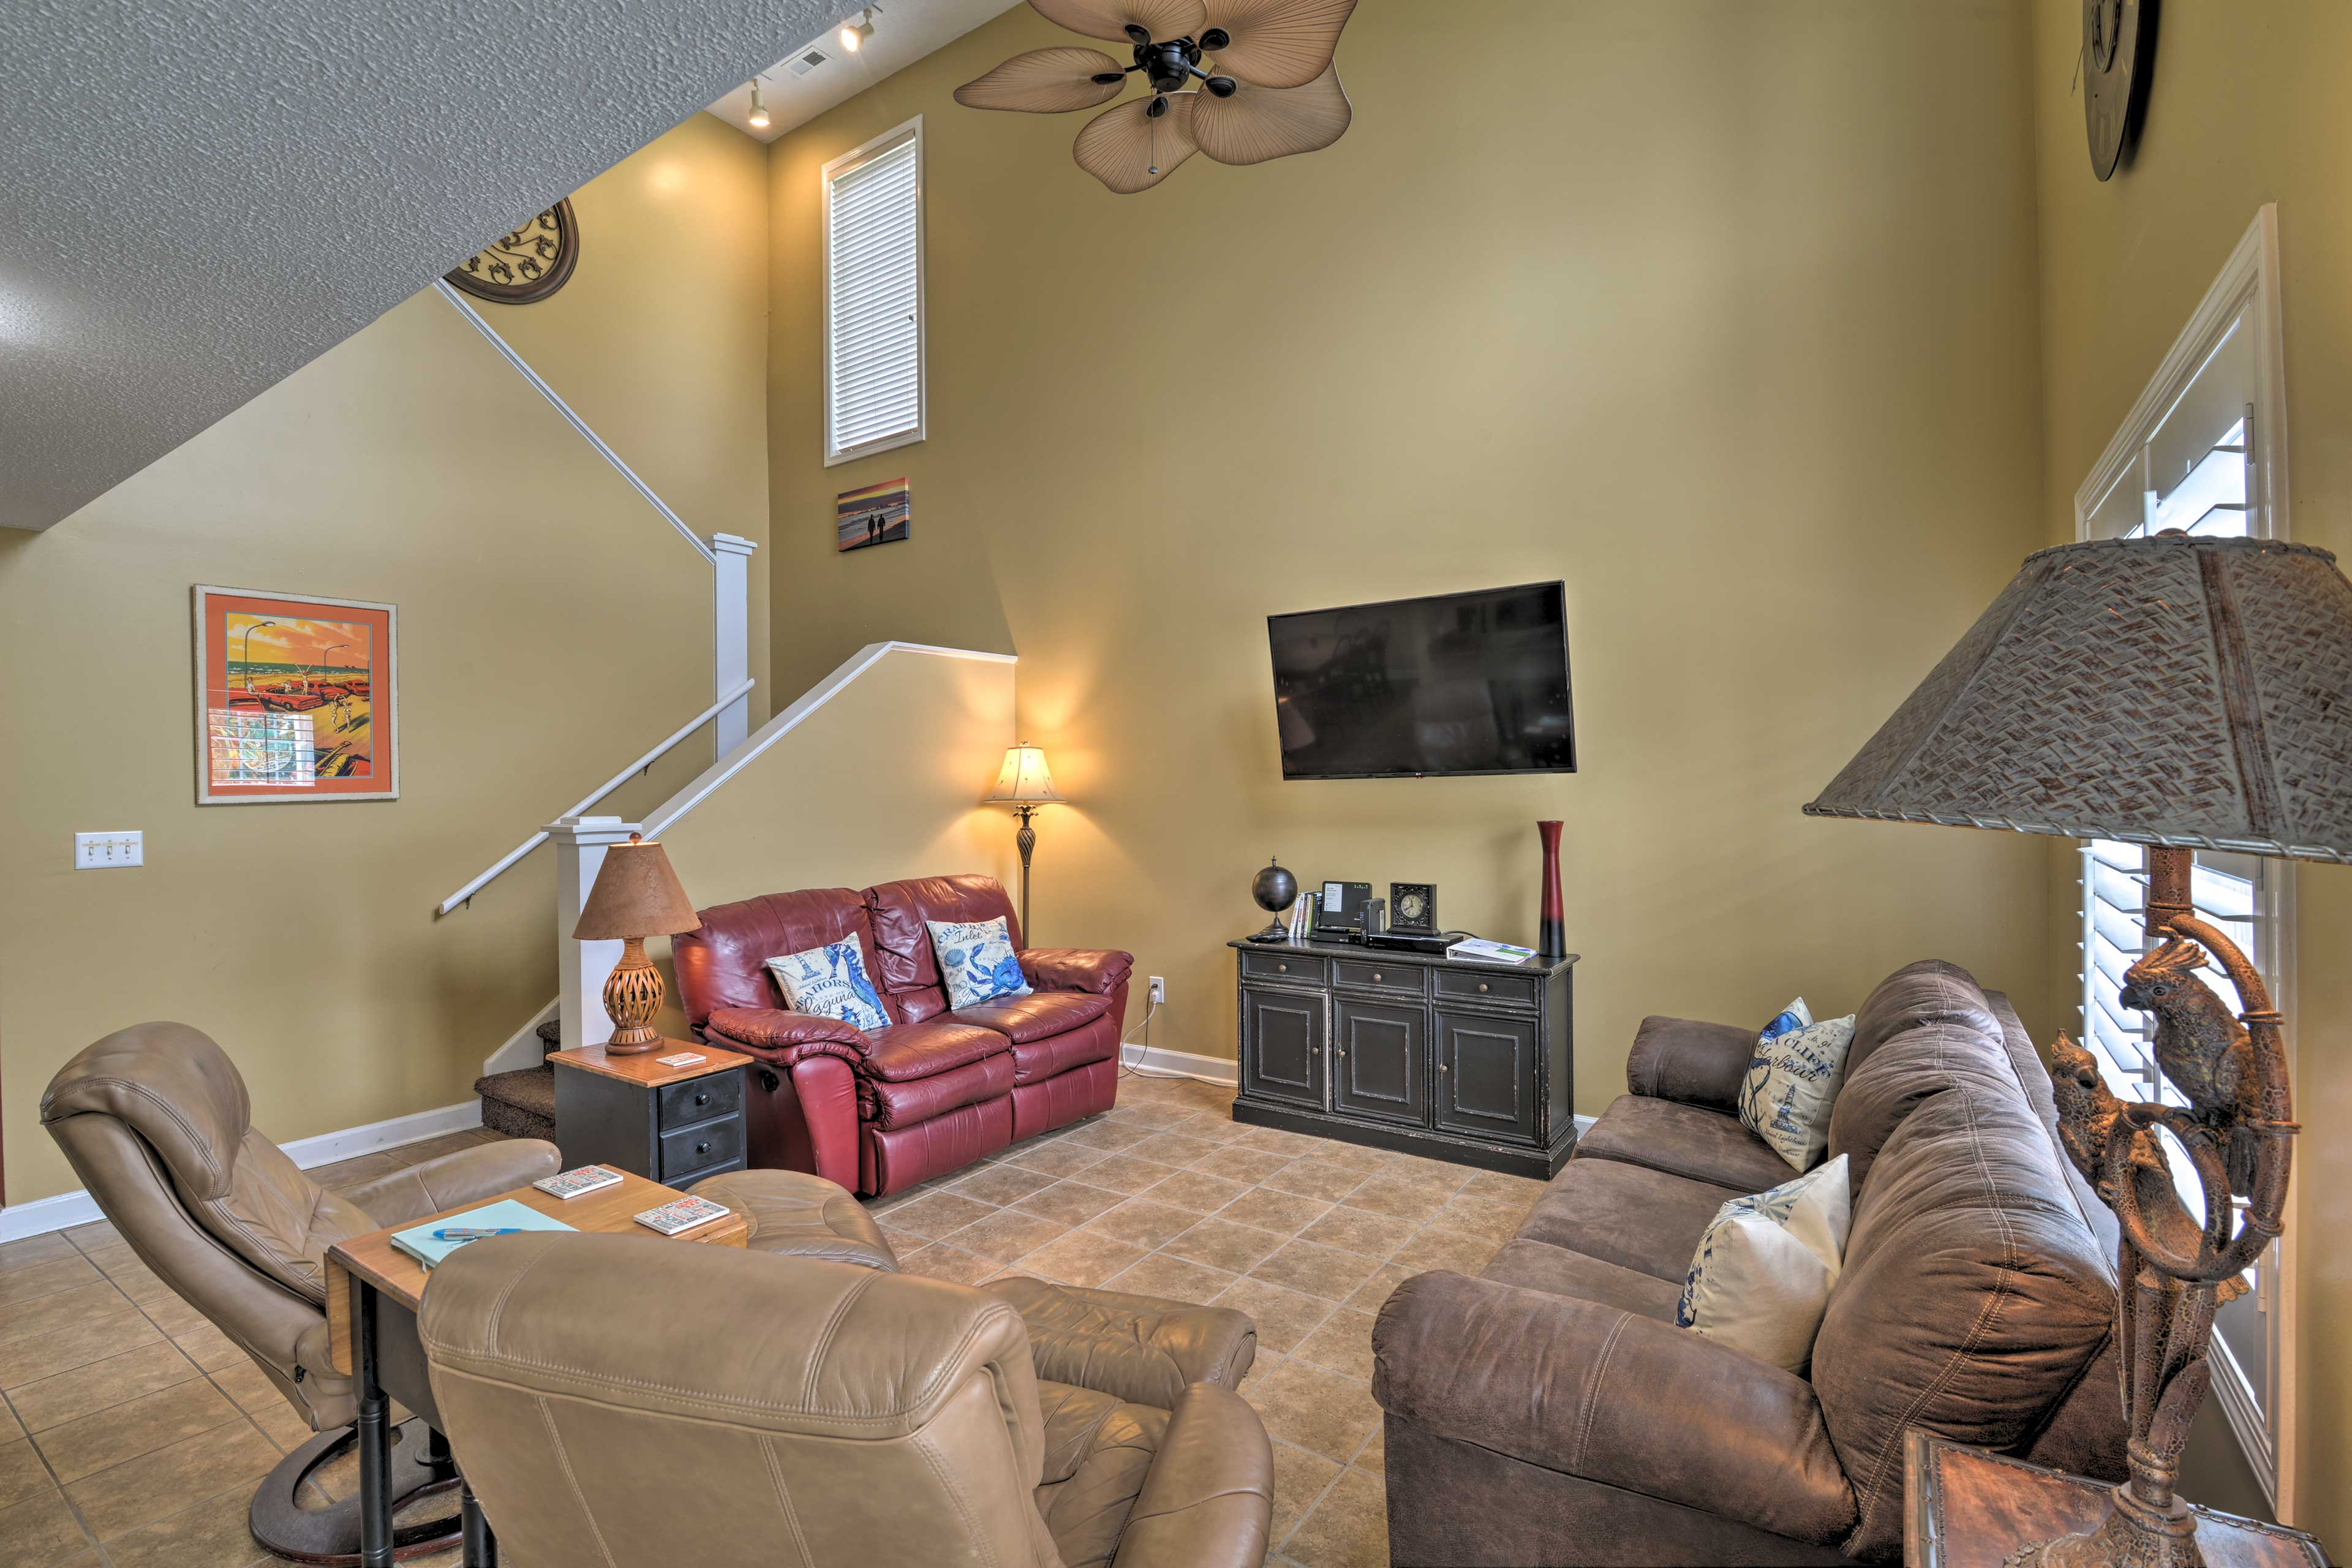 Inside the home, you'll find numerous amenities, plus 4 bedrooms and 4 baths.